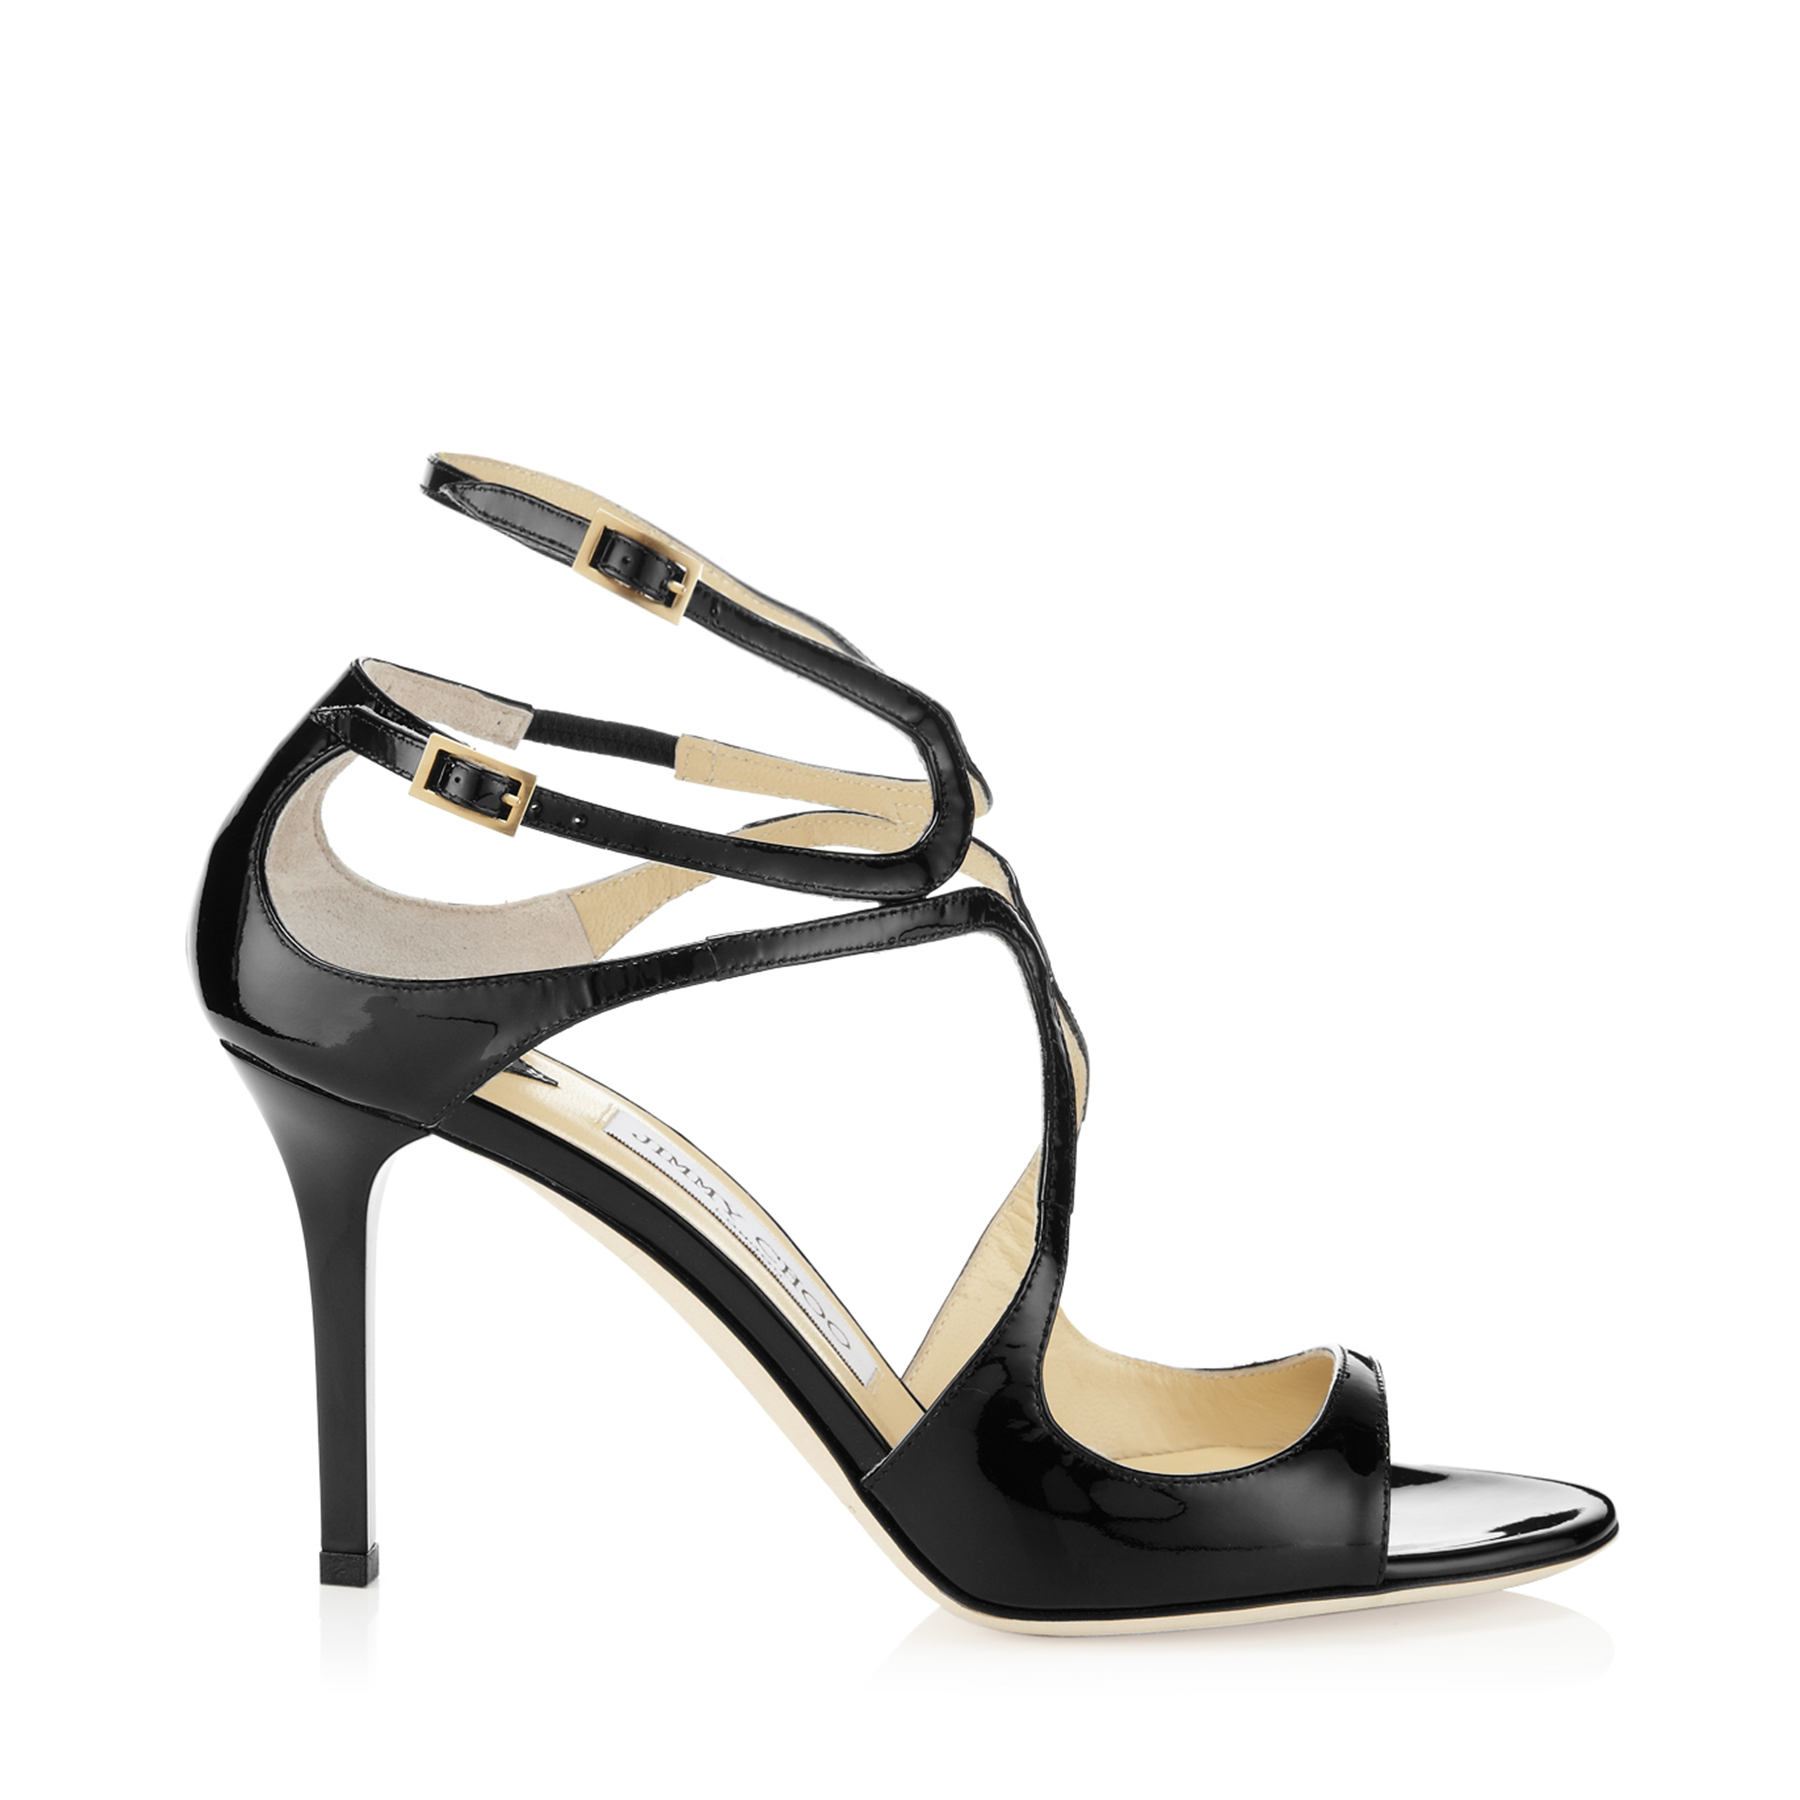 IVETTE Black Patent Leather Strappy Sandals